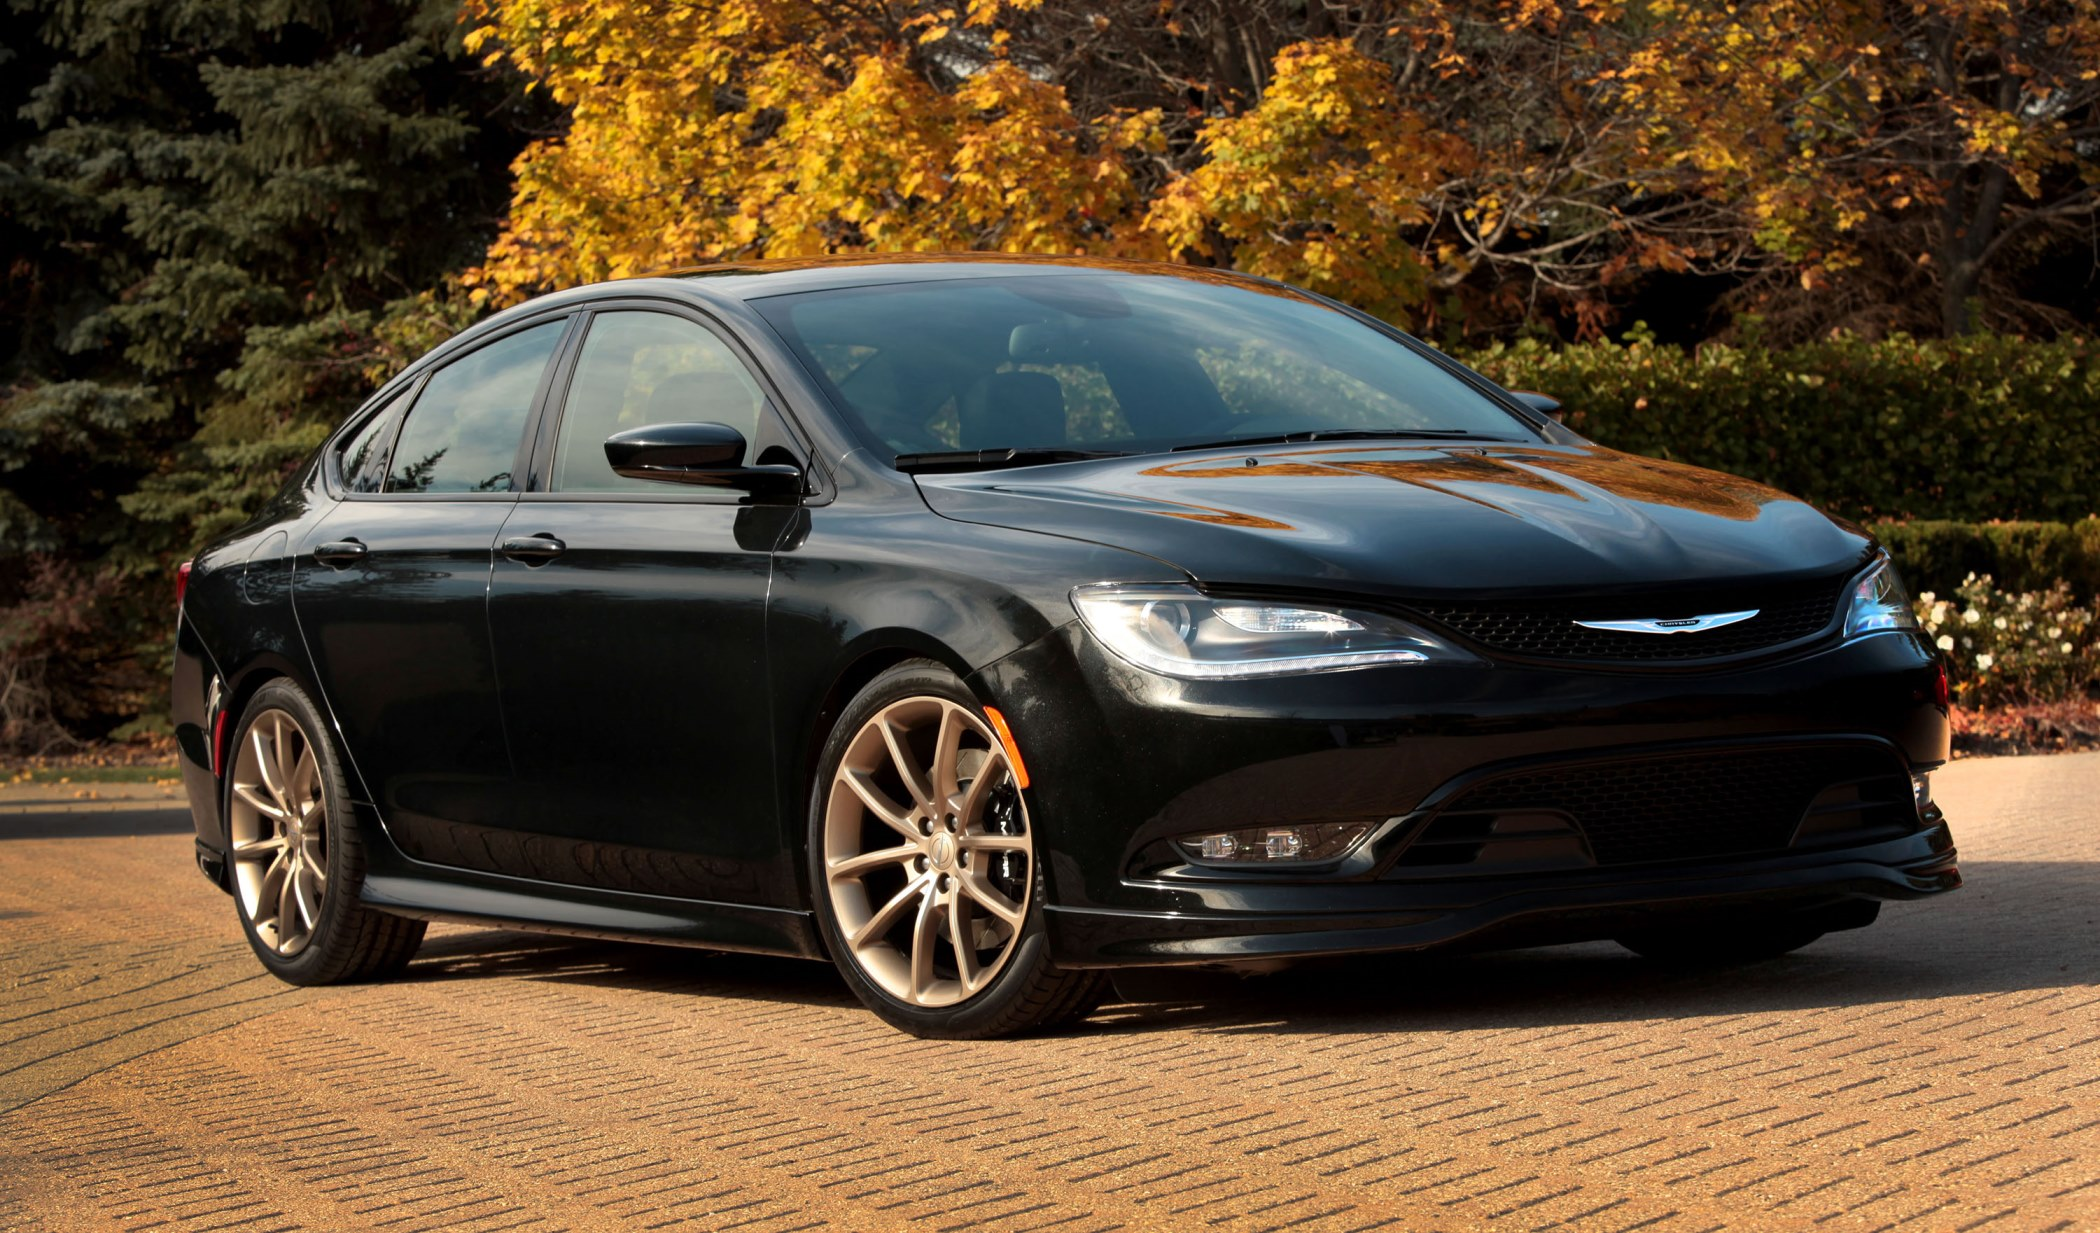 2100x1233 - Chrysler 200 Wallpapers 17